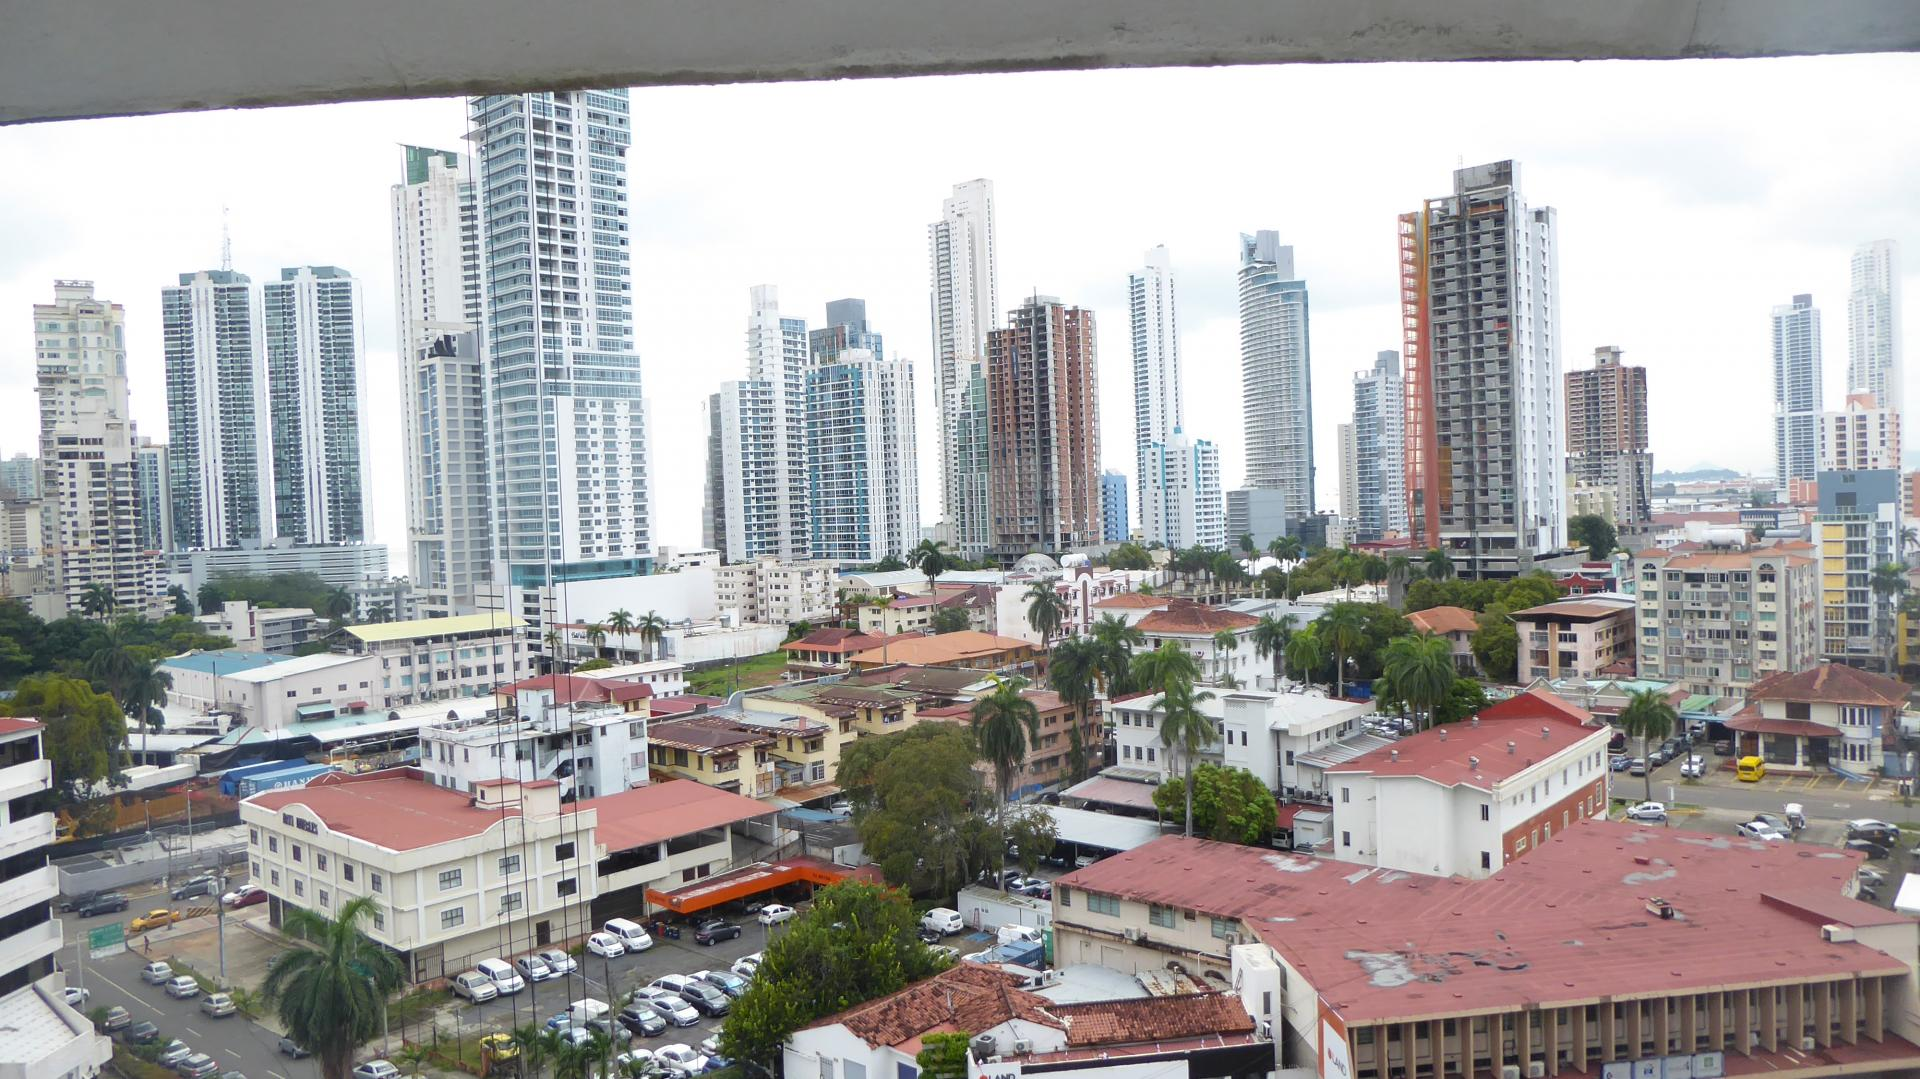 SPACIOUS CONDO PANAMA CITY, LA CRESTA, CITY VIEW IN THE PH VISTA BELLA